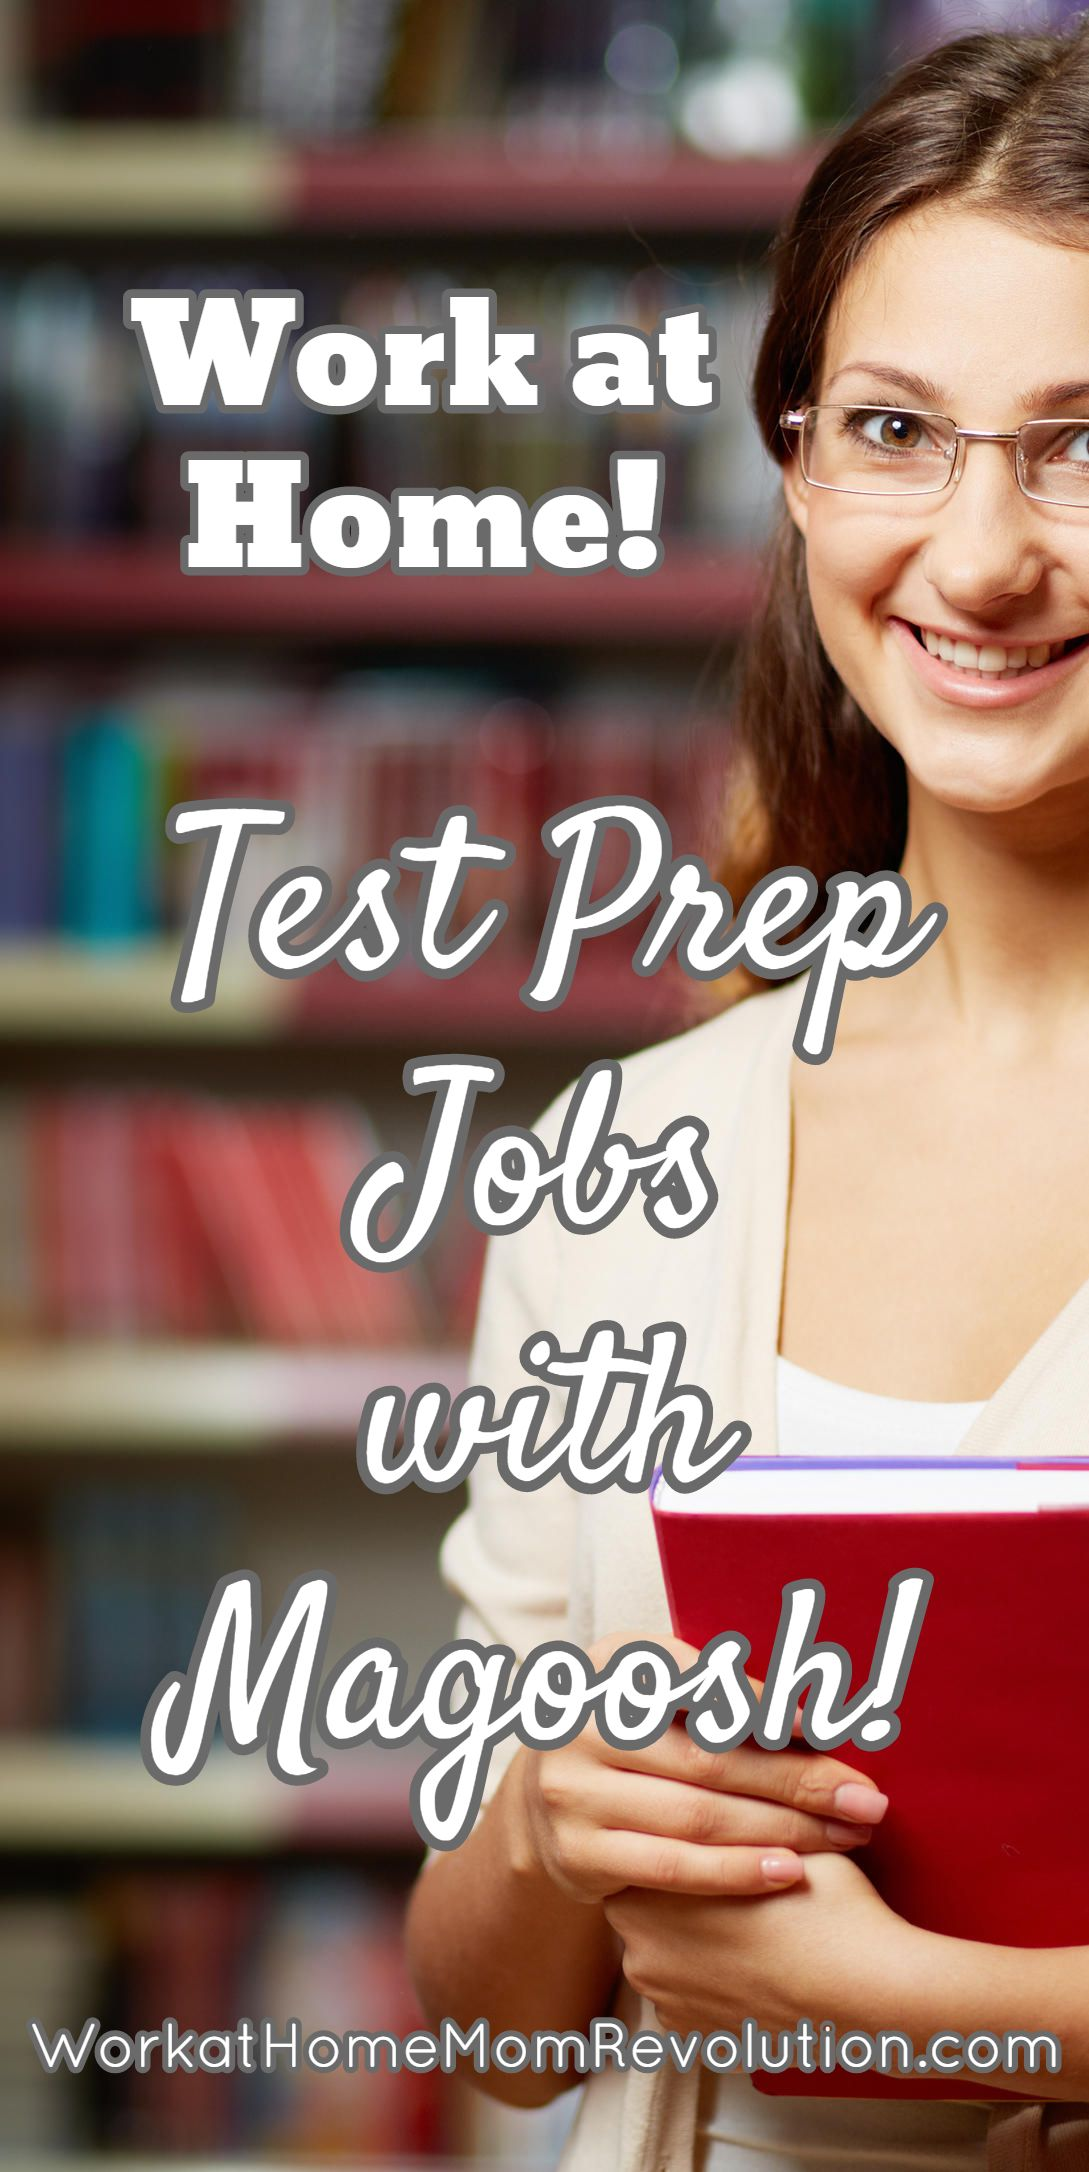 Work at Home Test Prep Jobs with Magoosh Work at Home